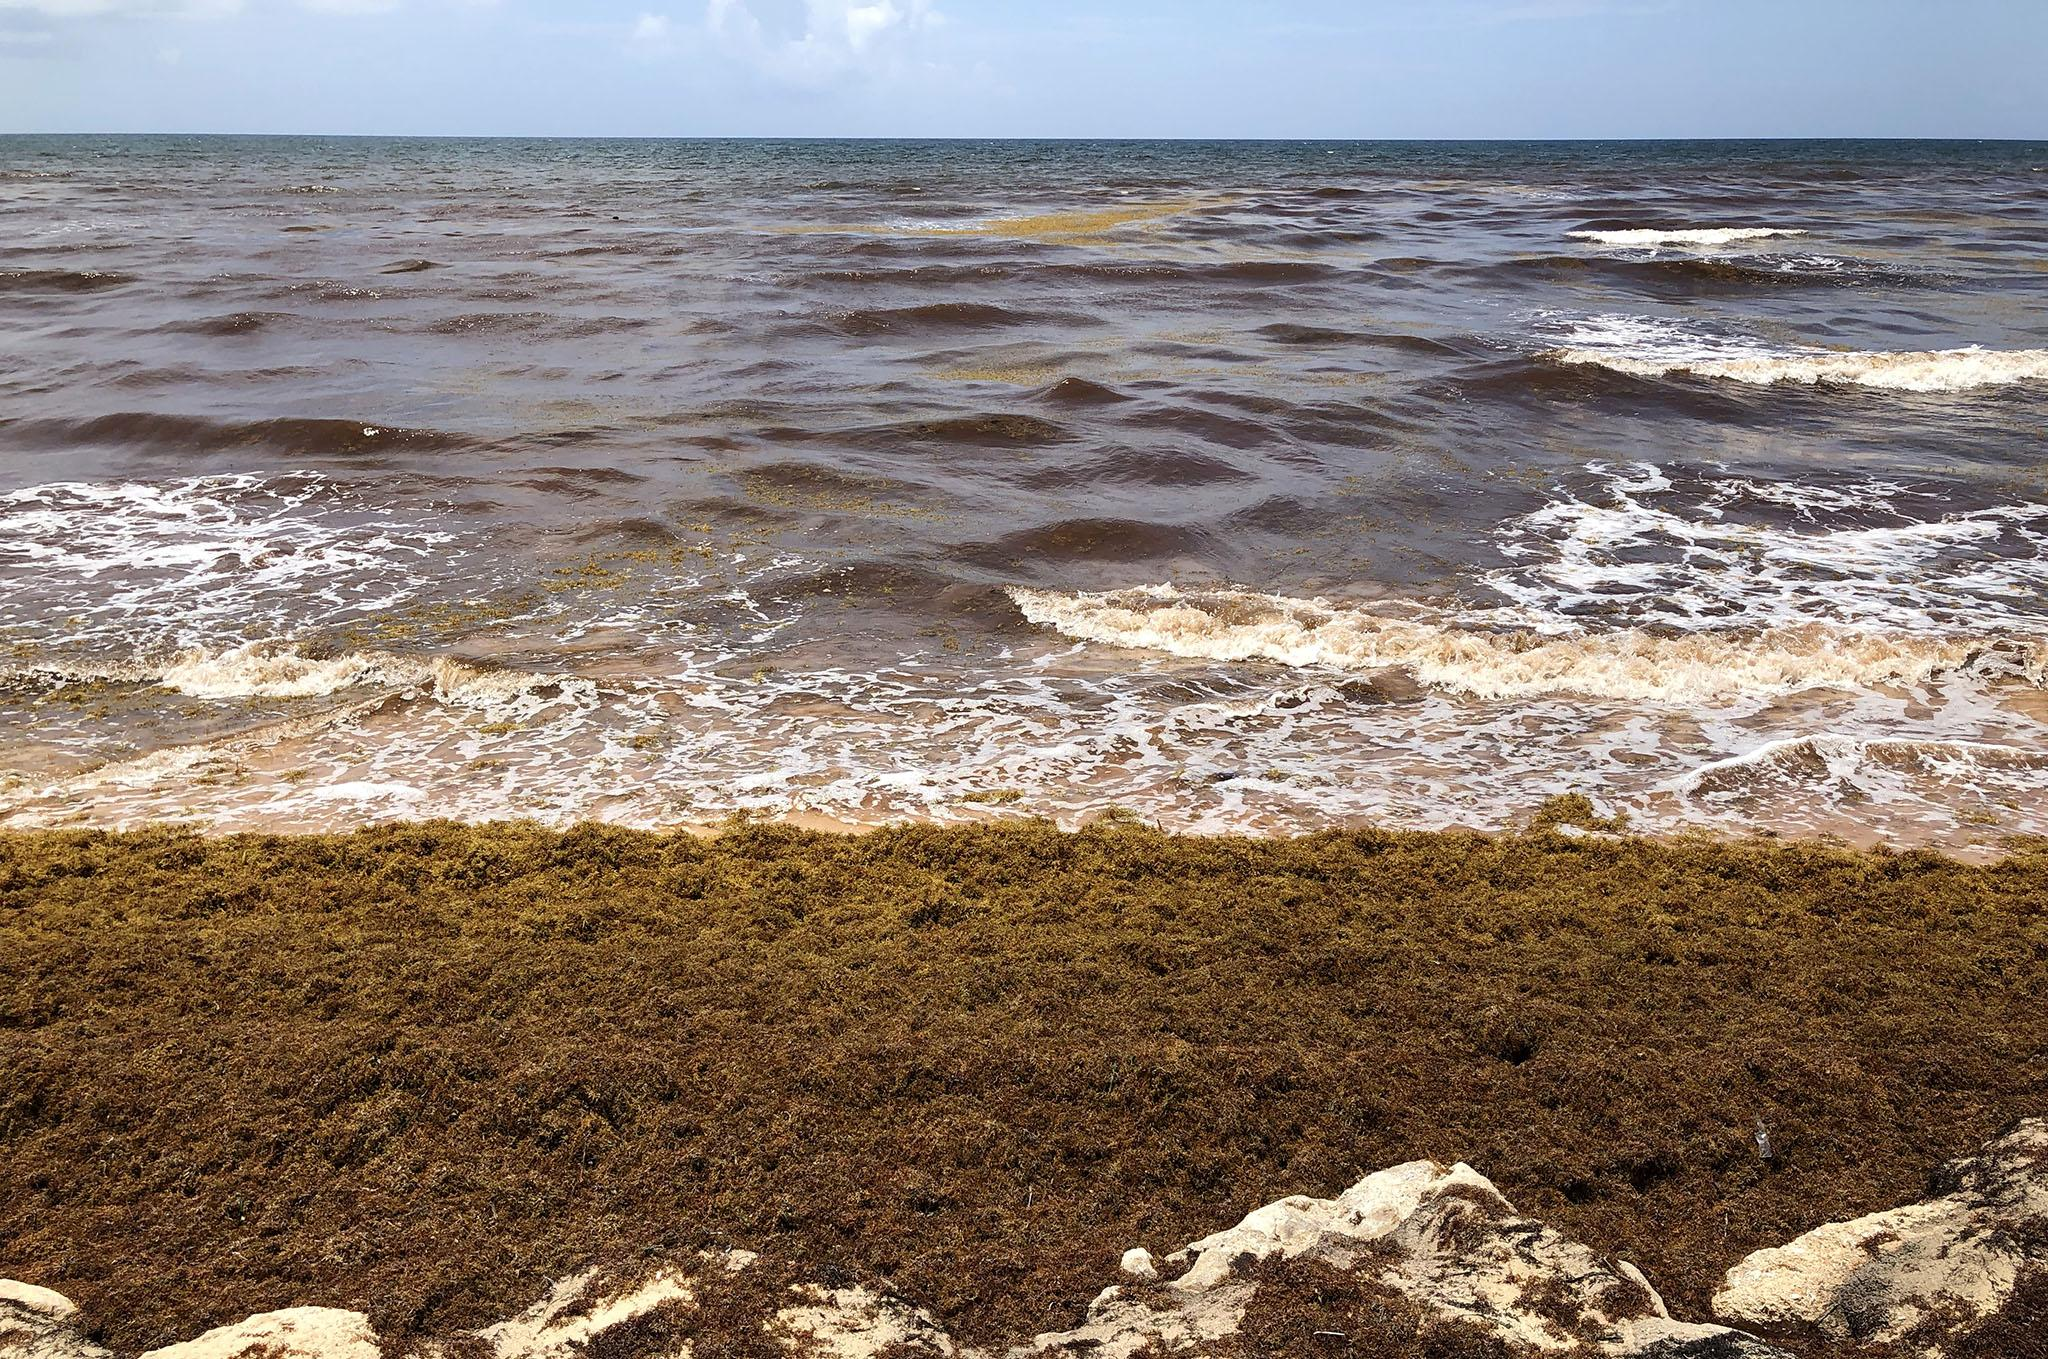 Climate change blamed as huge mounds of rotten seaweed spoil